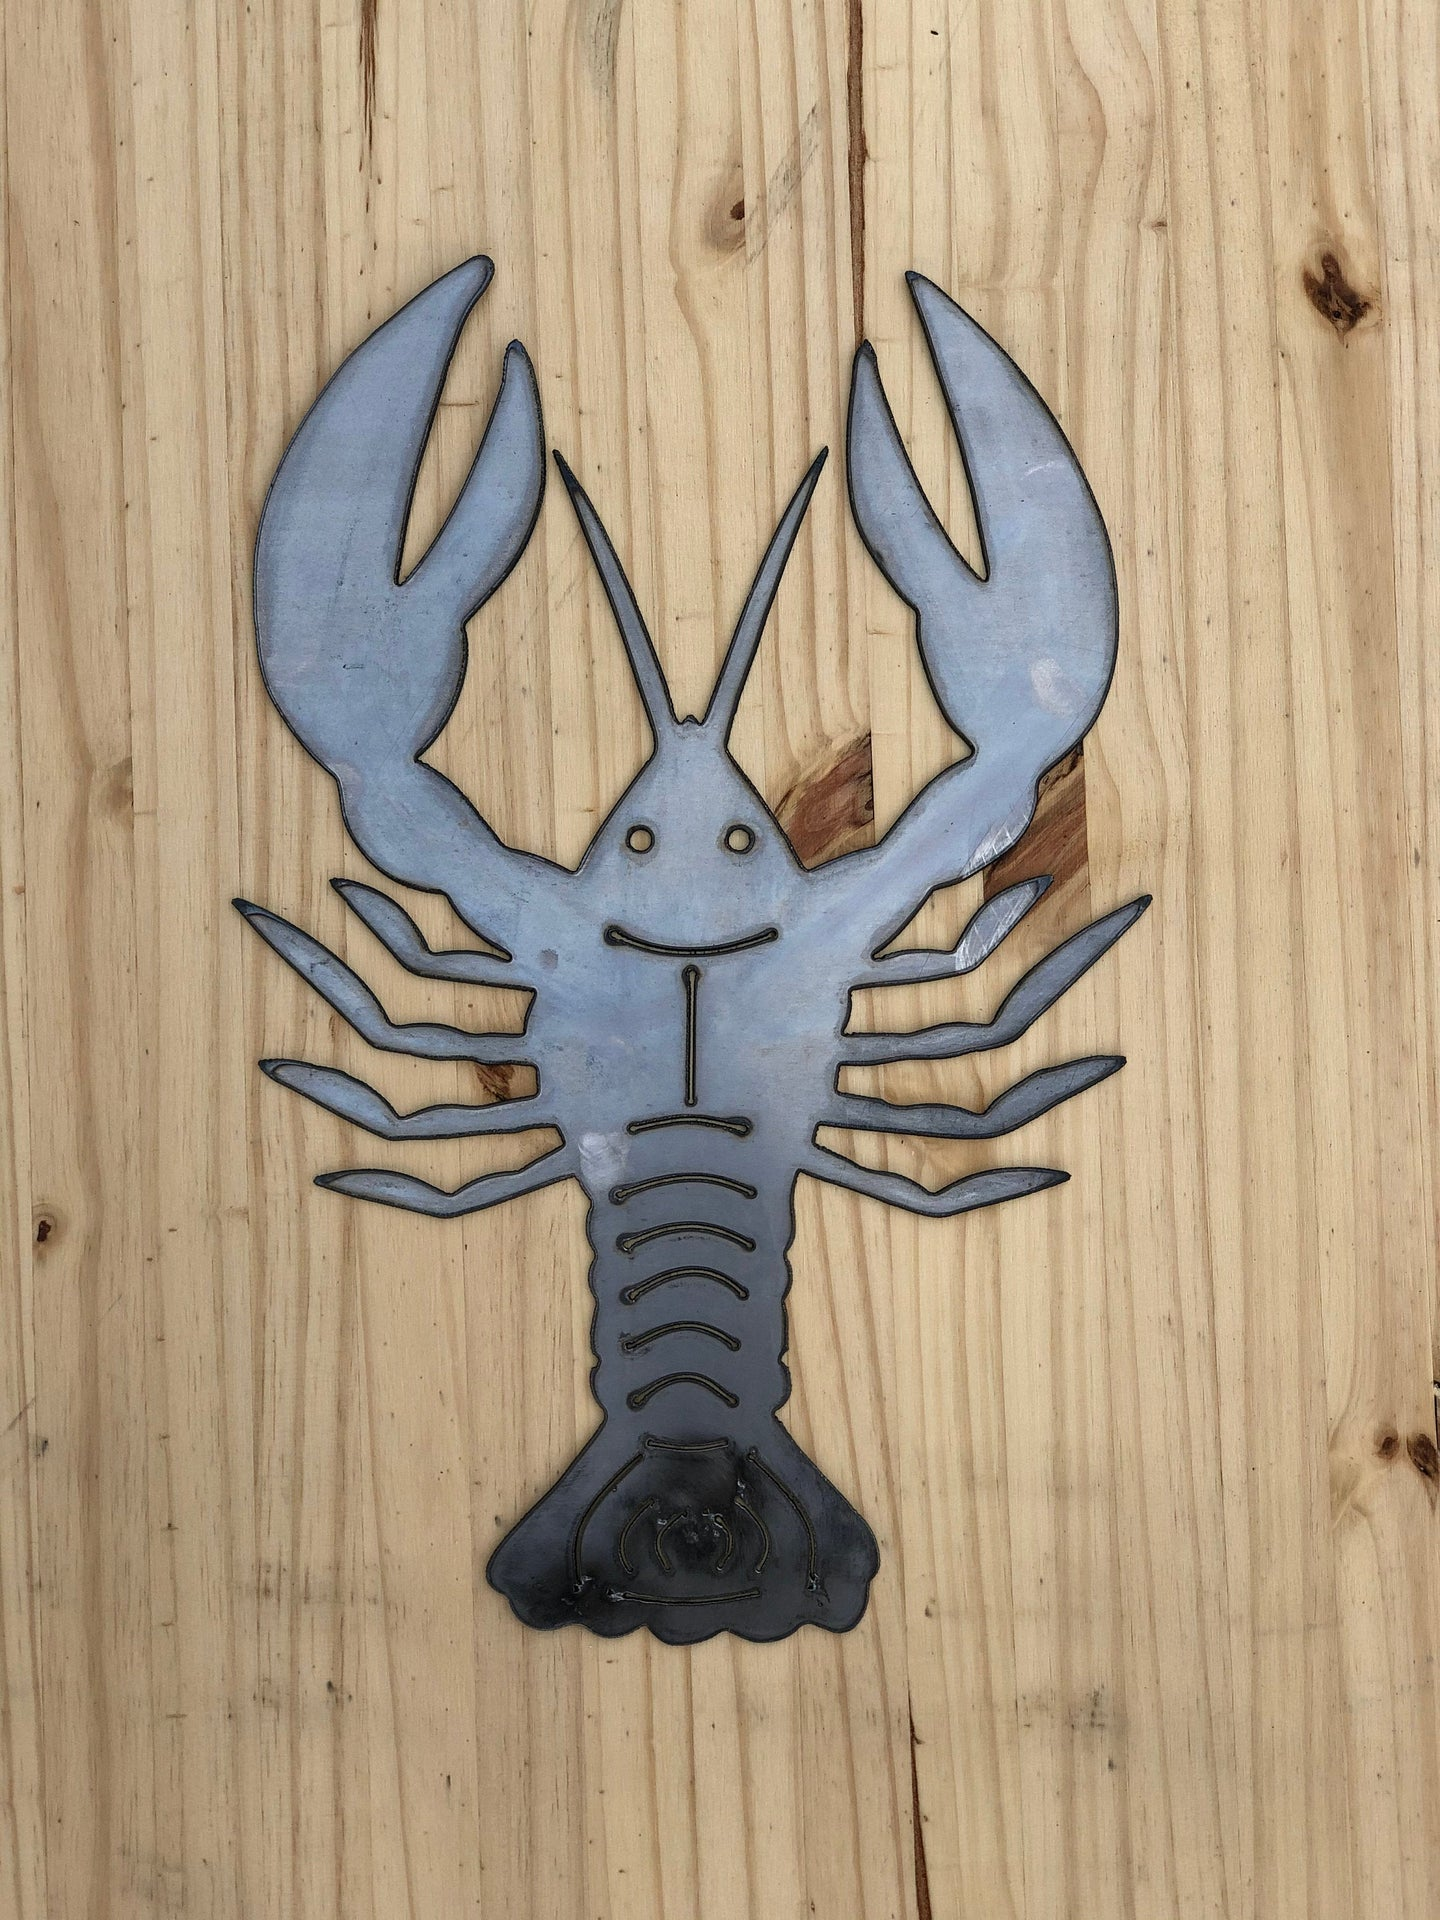 Metal Crawfish Wall Hanging Decoration | Crawfish Steel Sign